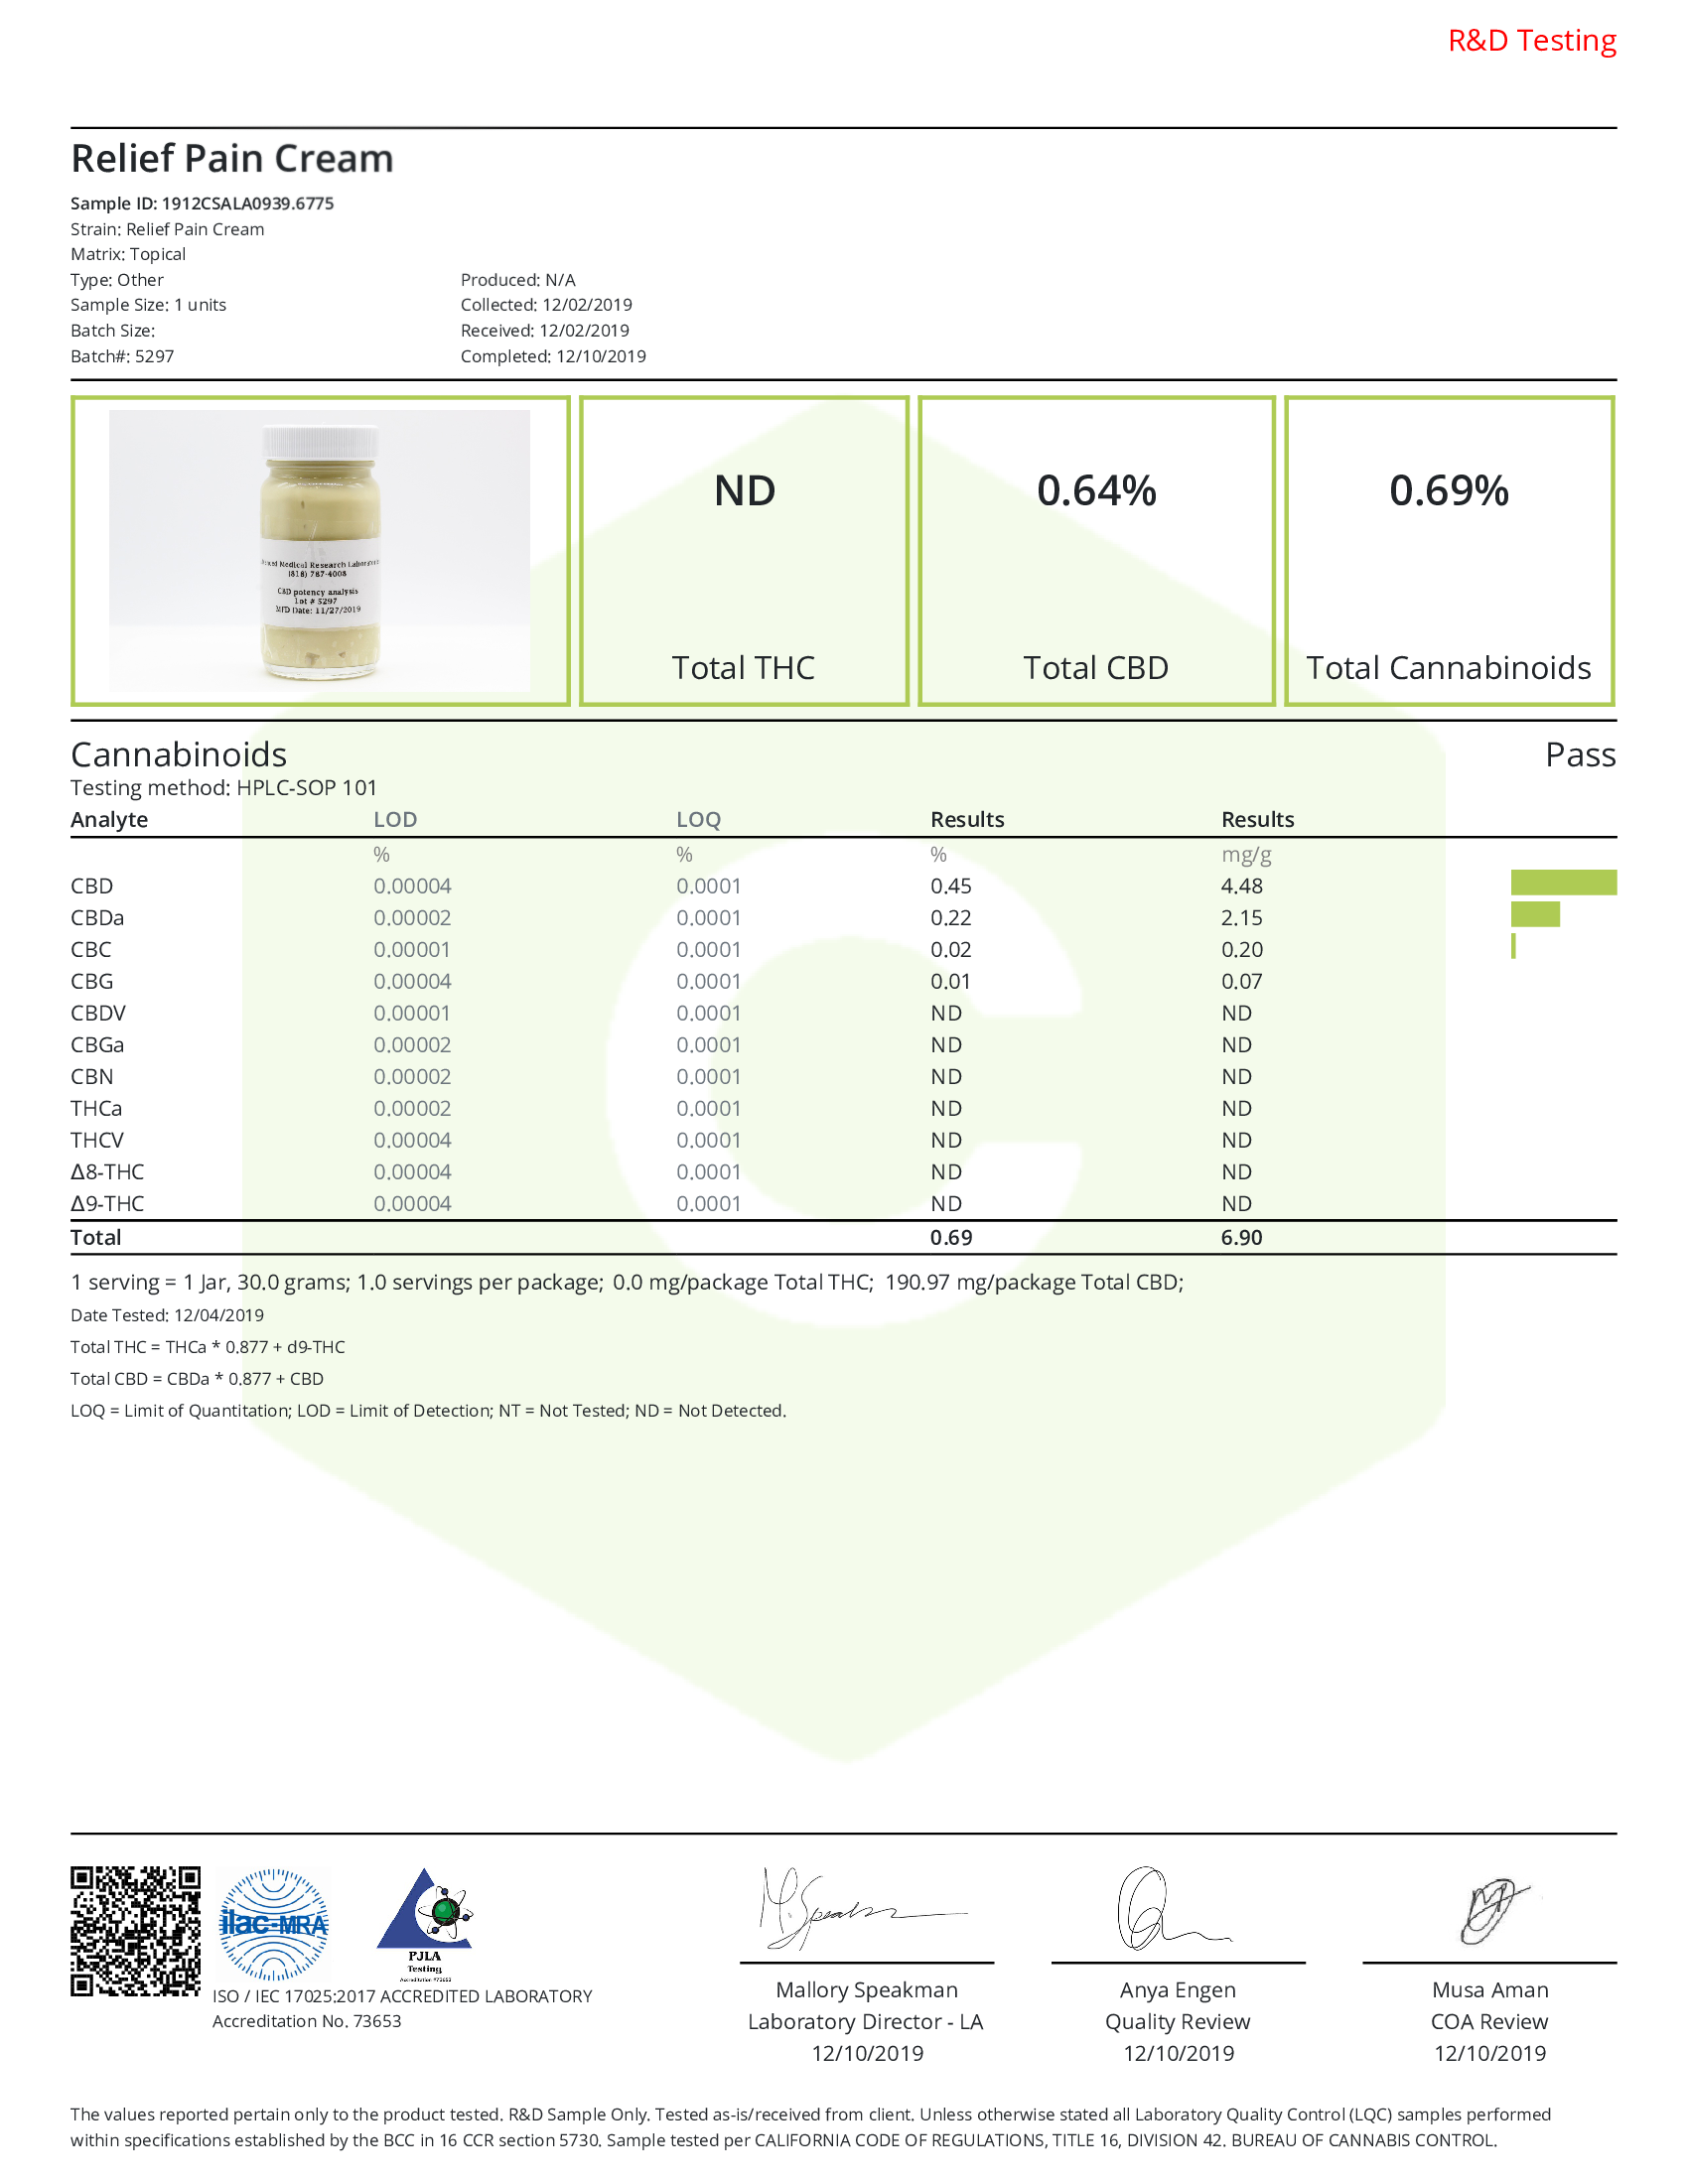 Blumenes CBD Laboratory Test Results  All of our CBD products adhere to the highest quality sourcing and manufacturing standards. See below for our independent, third-party laboratory test results.